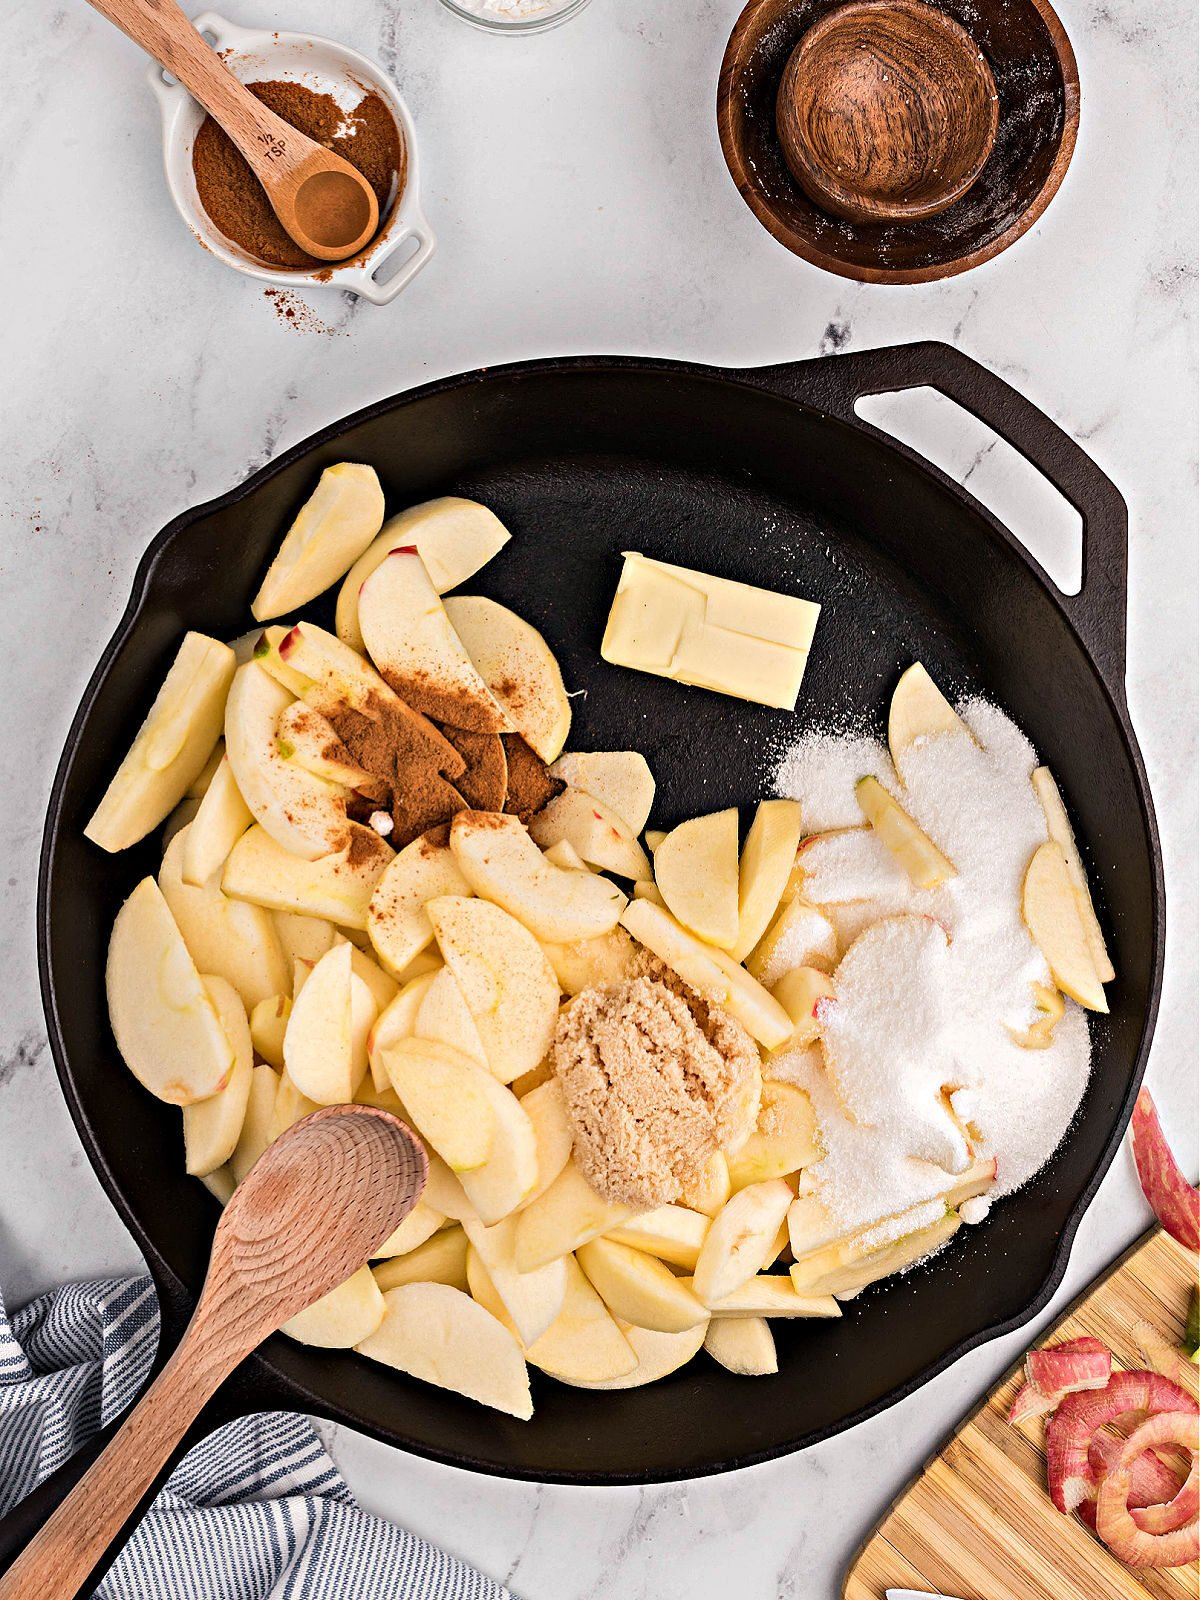 Cast iron skillet with apple slices, sugar, and spices.